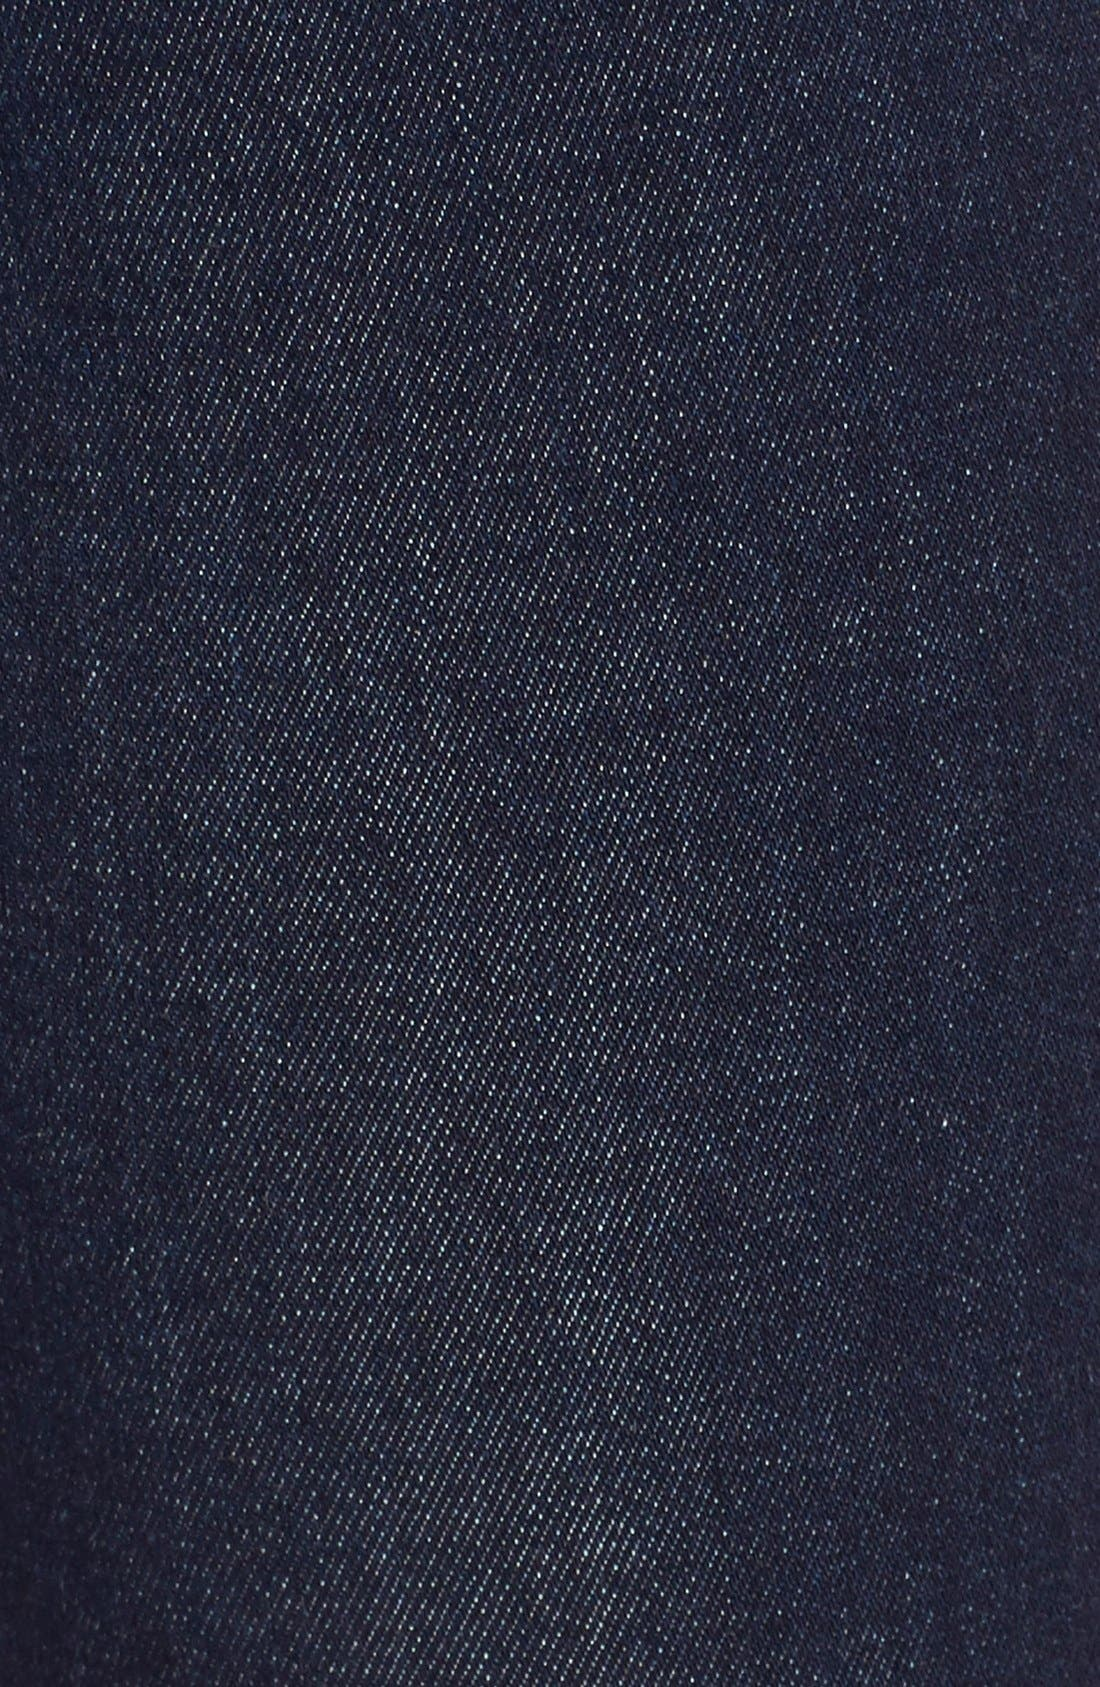 'Carlie' High Rise Skinny Jeans,                             Alternate thumbnail 3, color,                             406